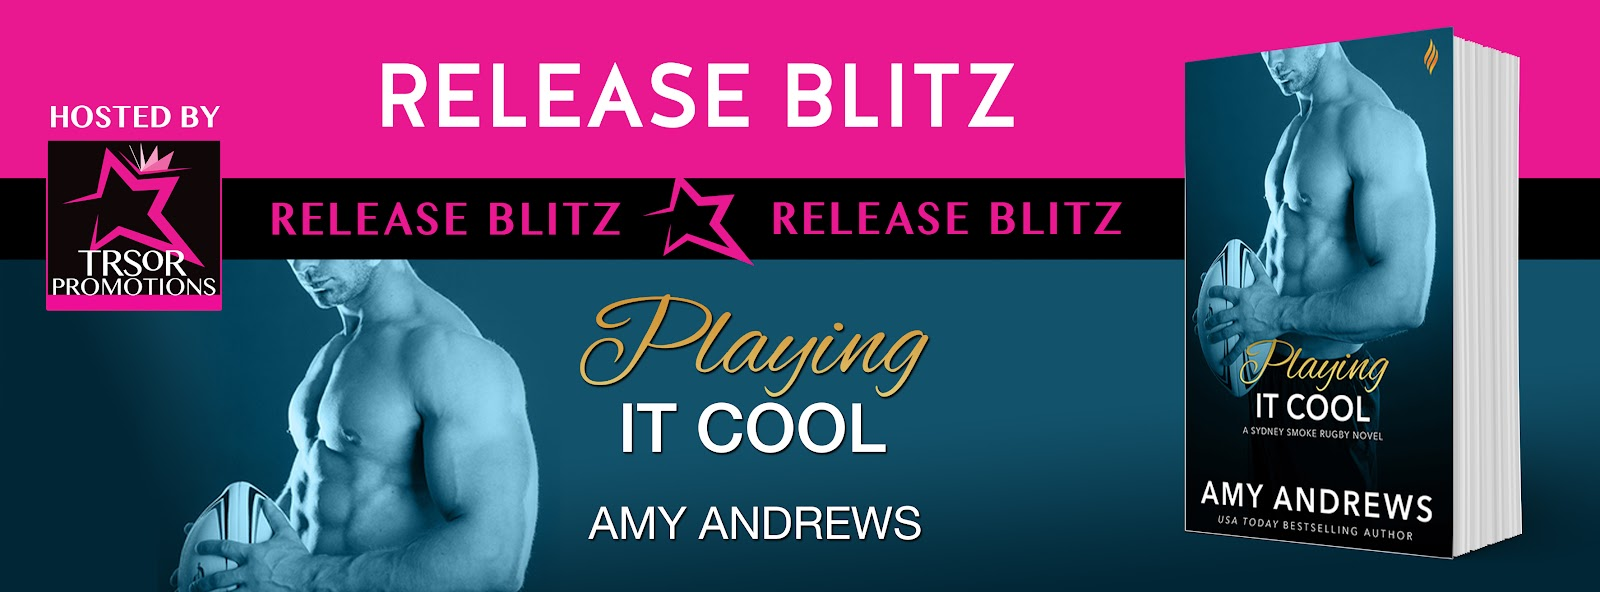 PLAYING_IT_COOL_RELEASE_BLITZ.jpg